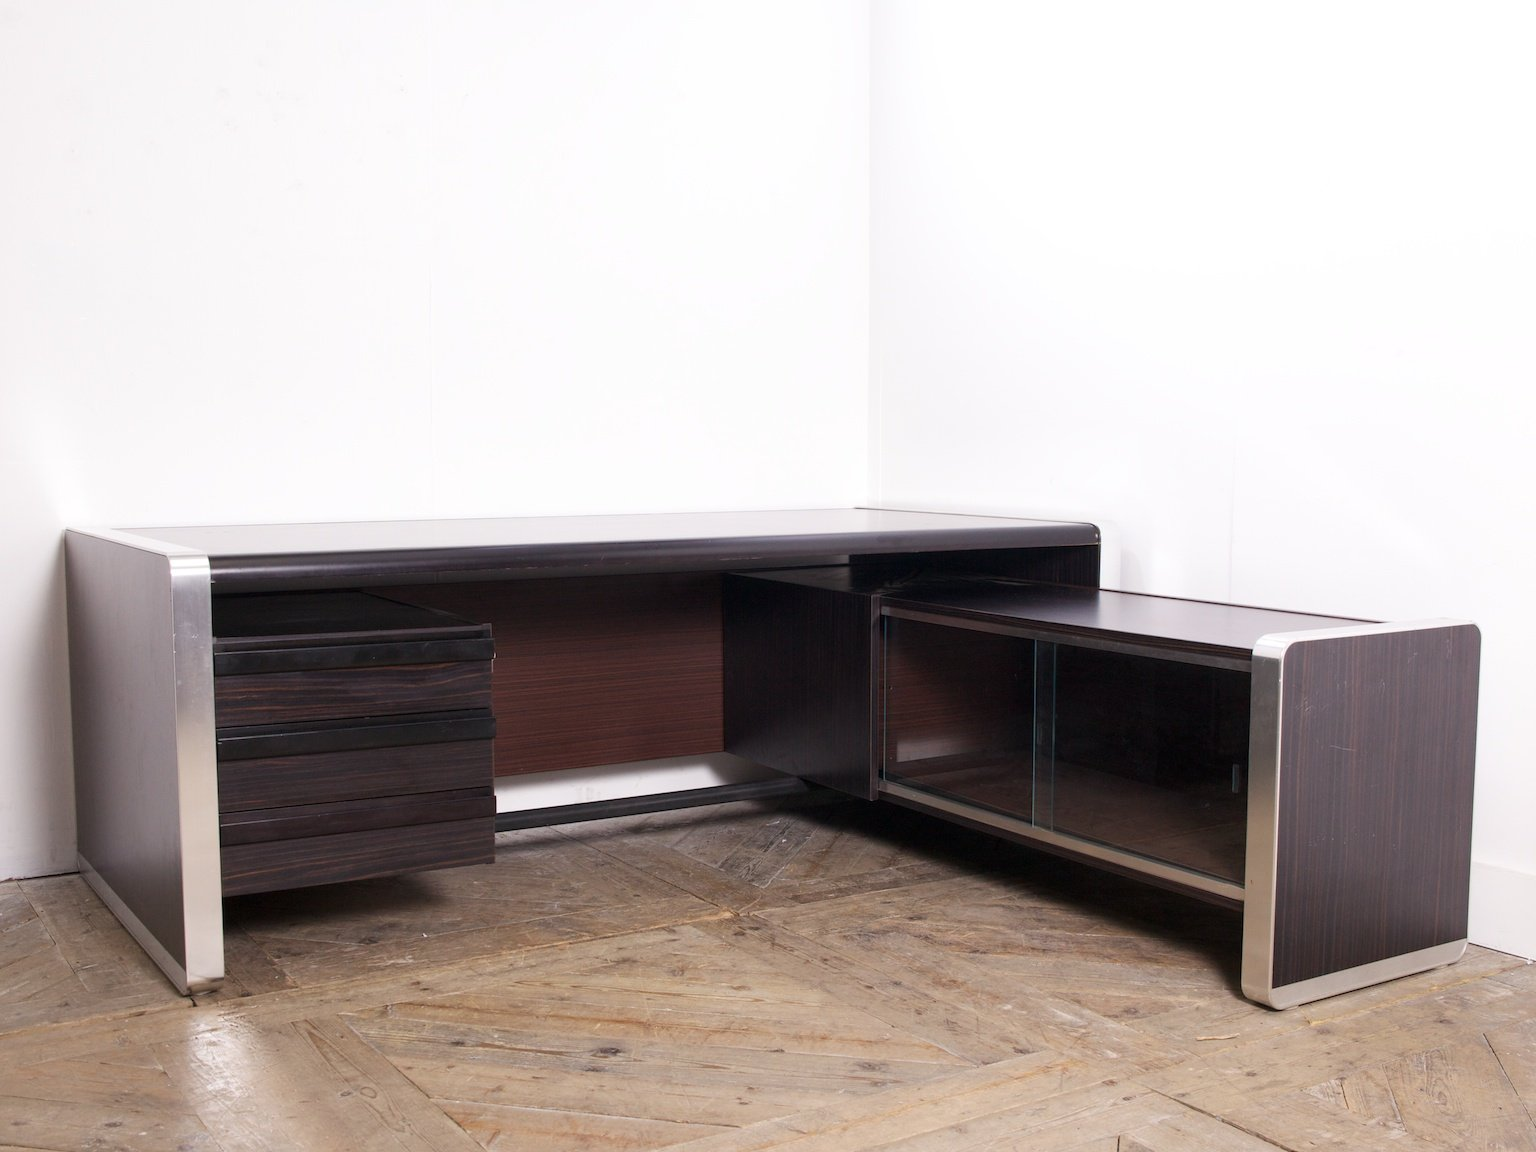 schwarzer palisander furnier schreibtisch 1980er bei. Black Bedroom Furniture Sets. Home Design Ideas